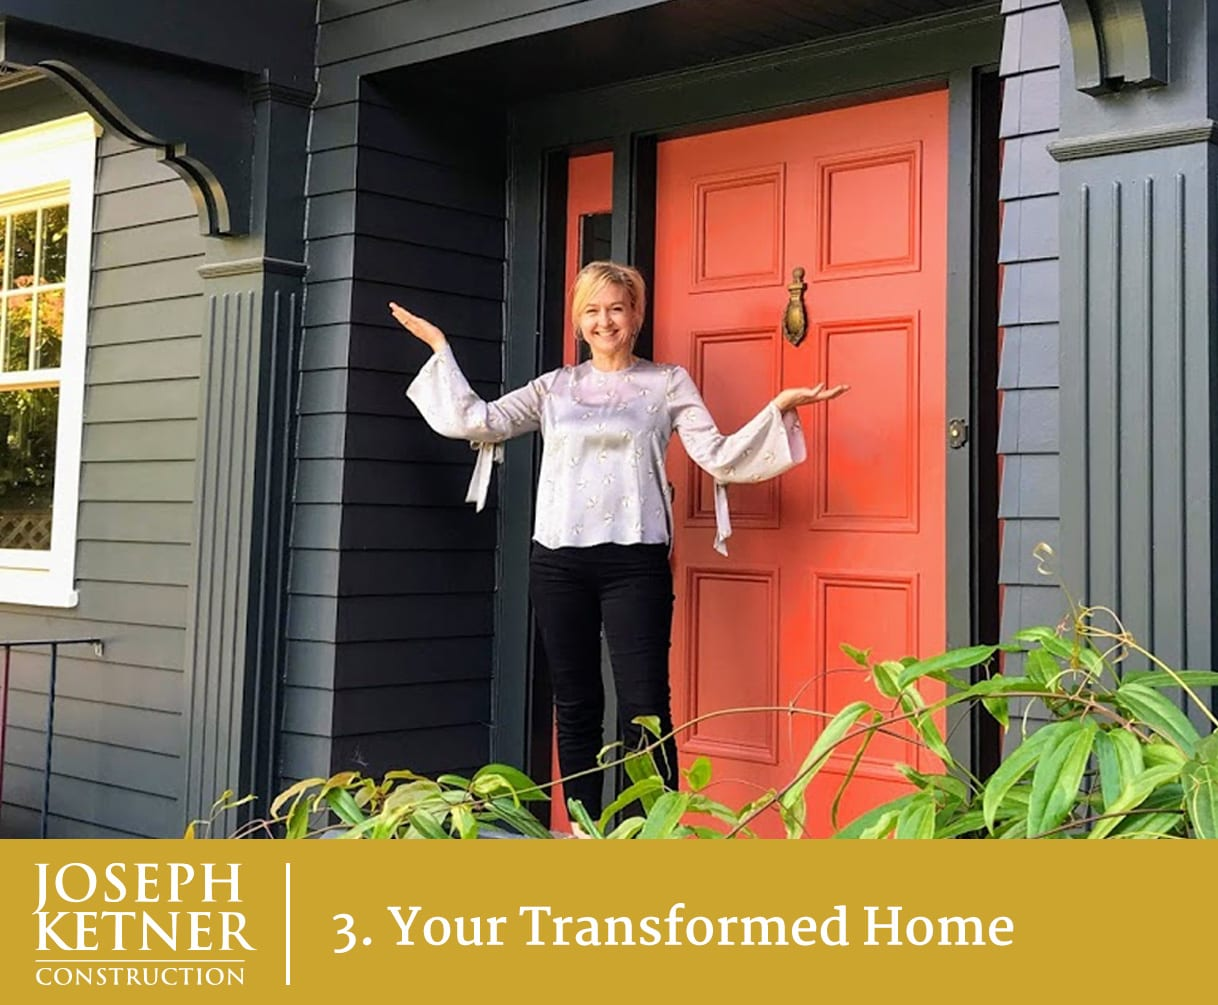 A happy female home owner standing in front of a red front door